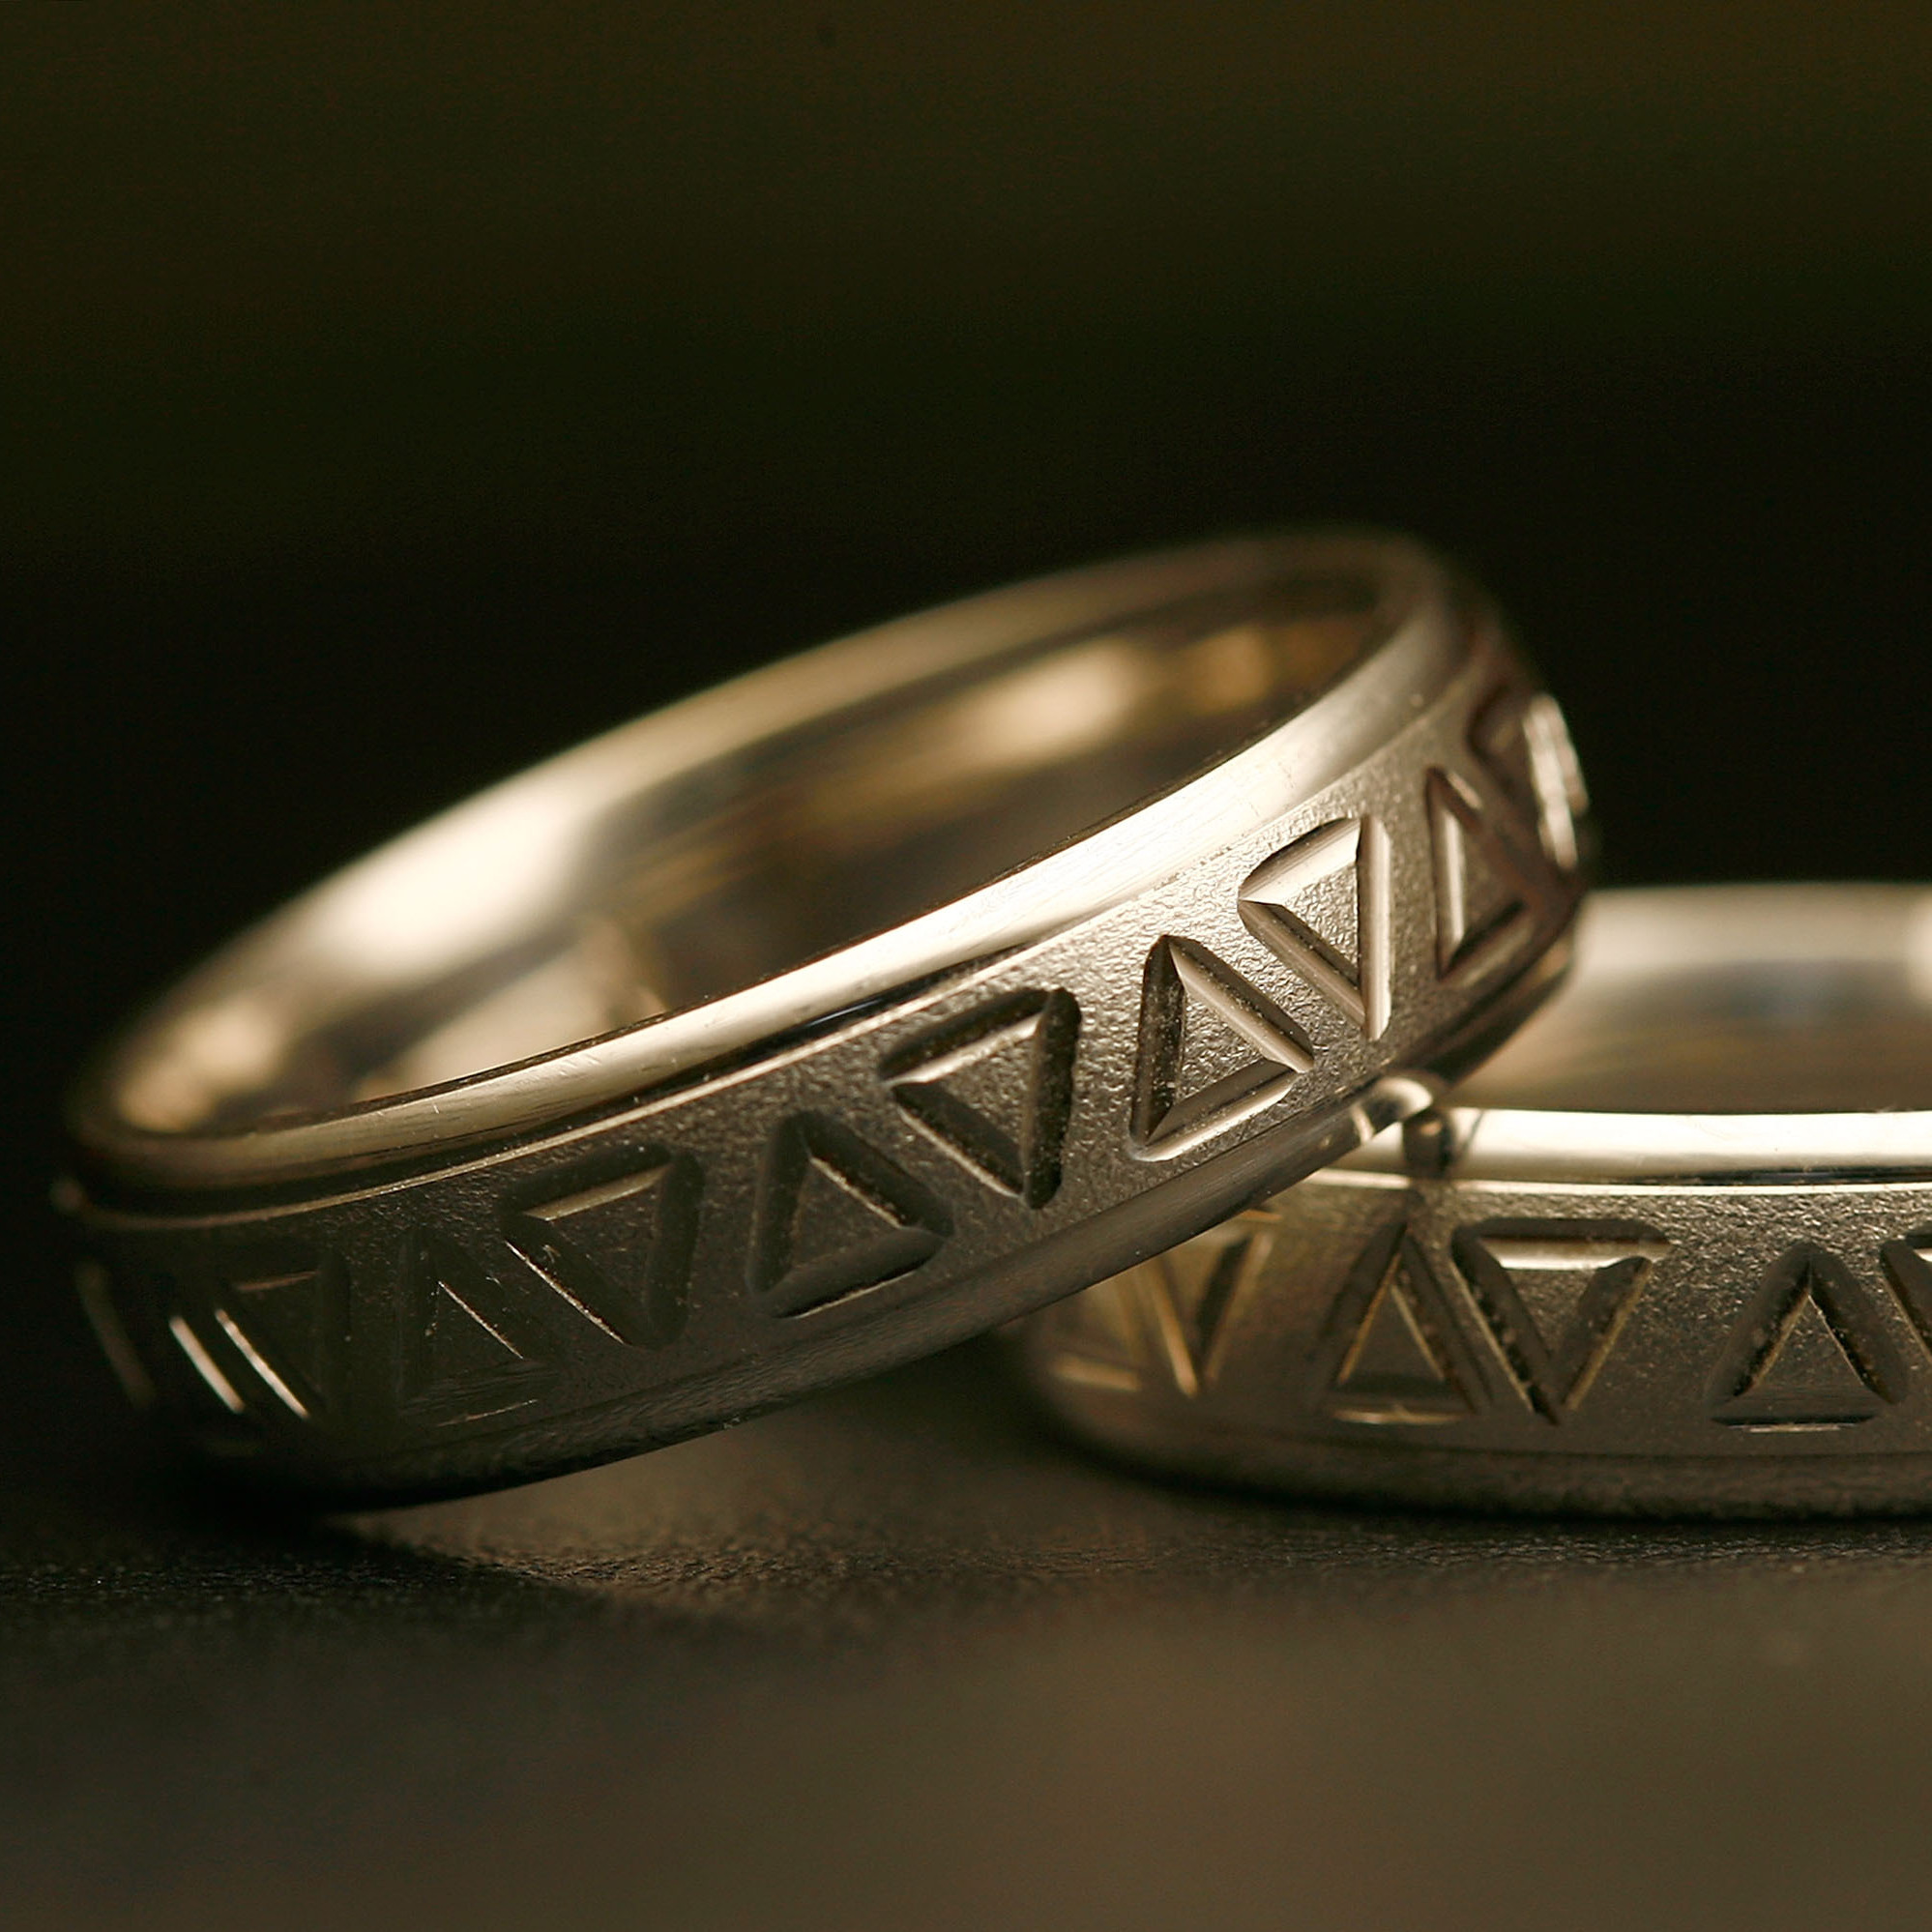 Same-sex wedding rings are engraved with triangles, a symbol of gay pride. Detractors say extending recognition to same-sex couples will weaken a bedrock institution meant to protect women and children.